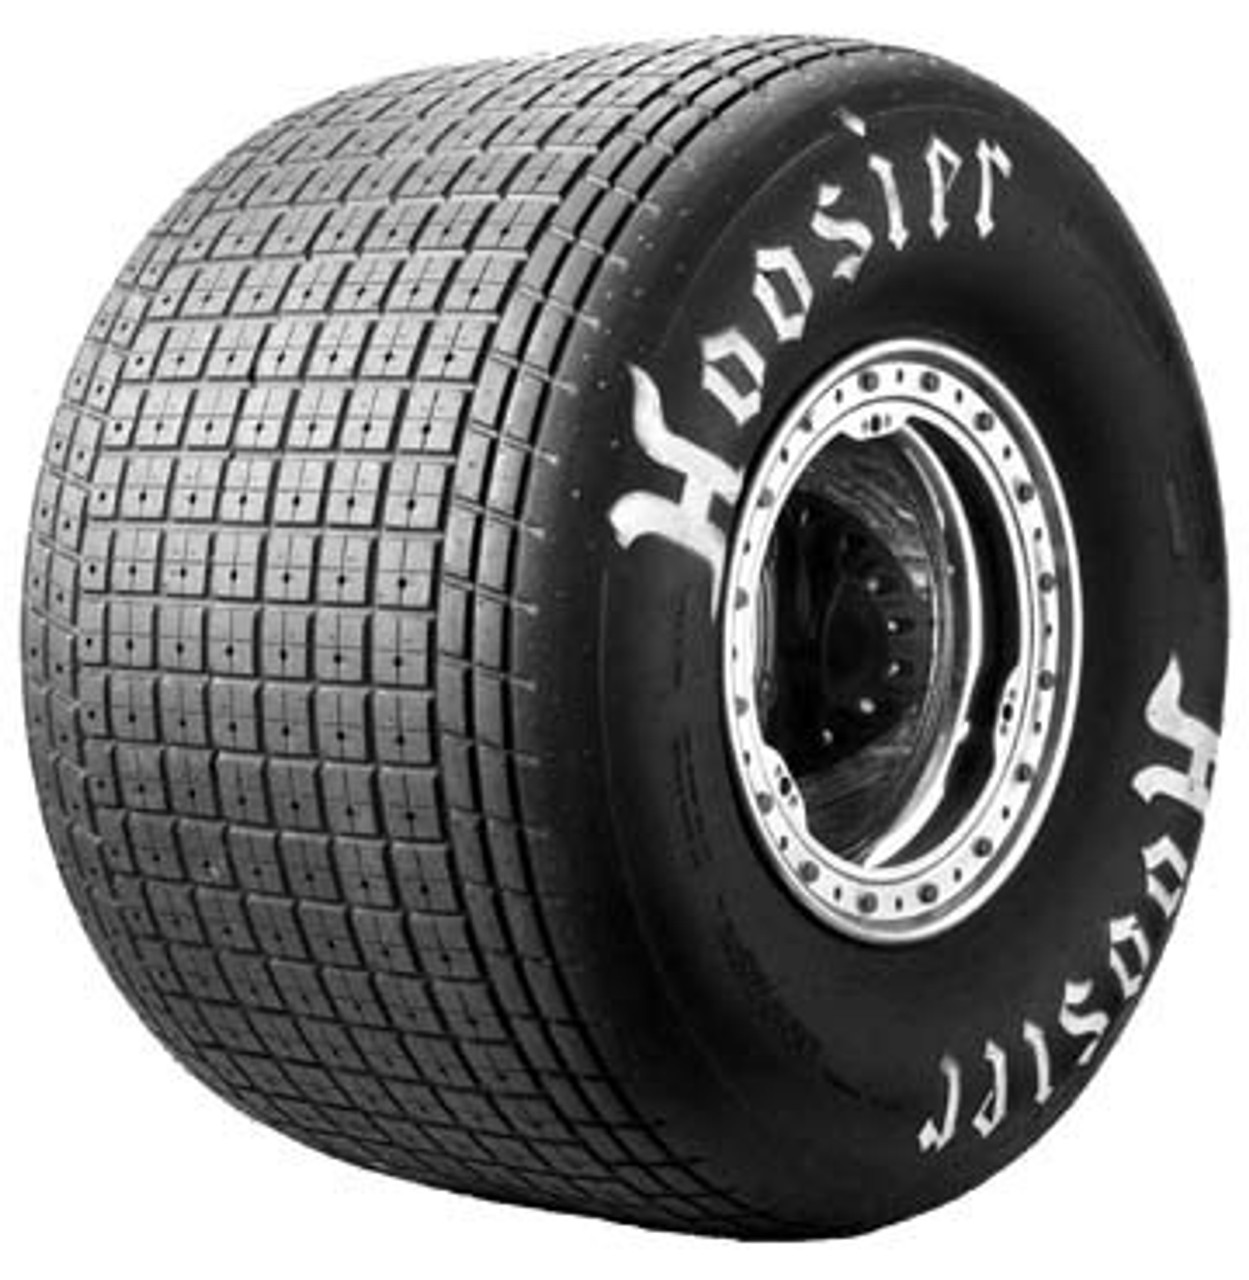 Hoosier RaceSaver 305 Sprint Dirt Tire